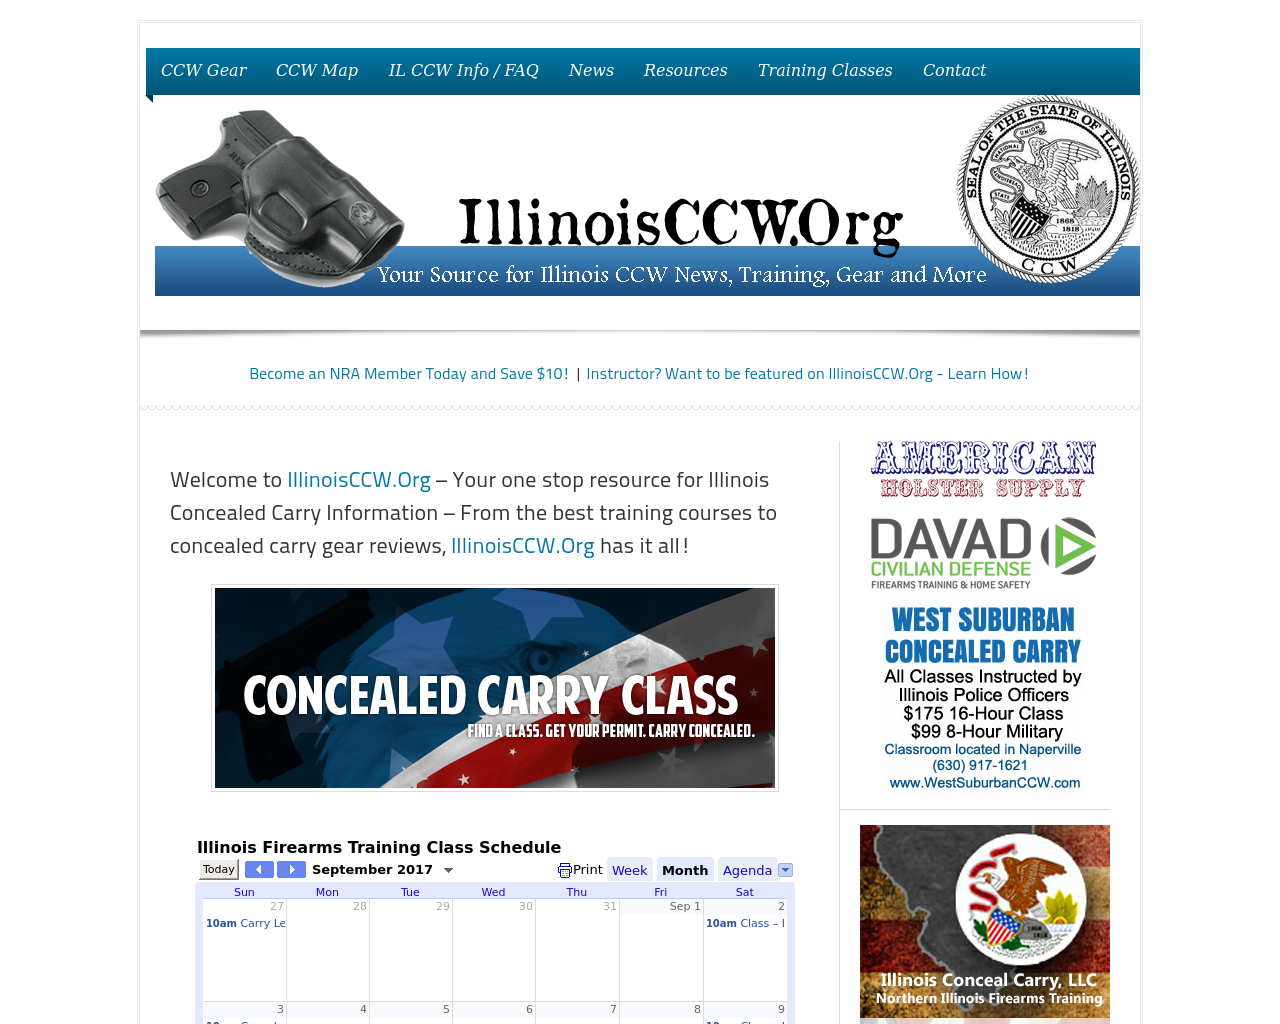 IllinoisCCW.Org-Advertising-Reviews-Pricing